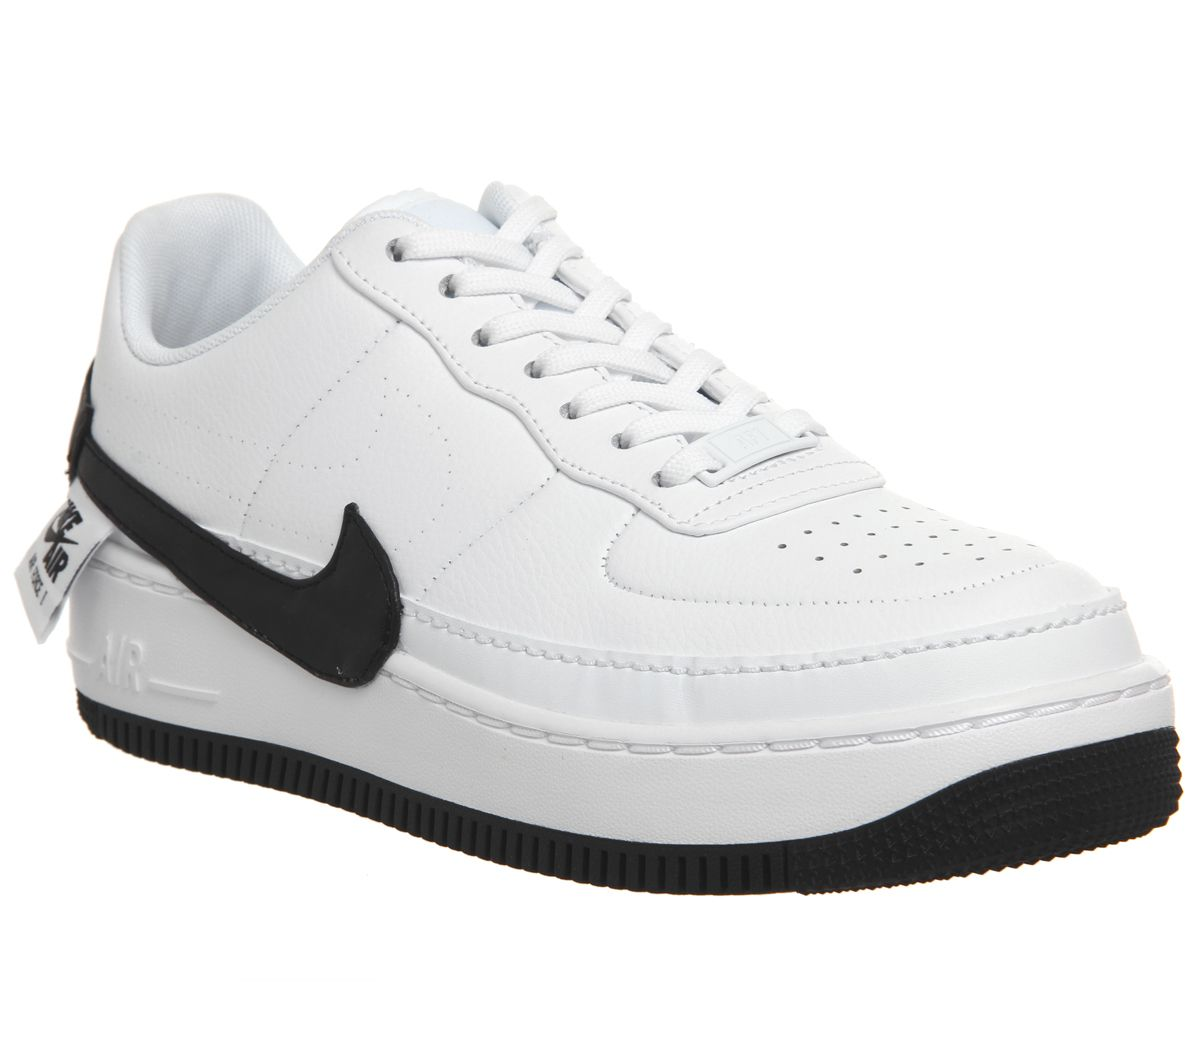 reputable site 5792c cffae Nike AF1 Jester XX Trainer White Black - Hers trainers